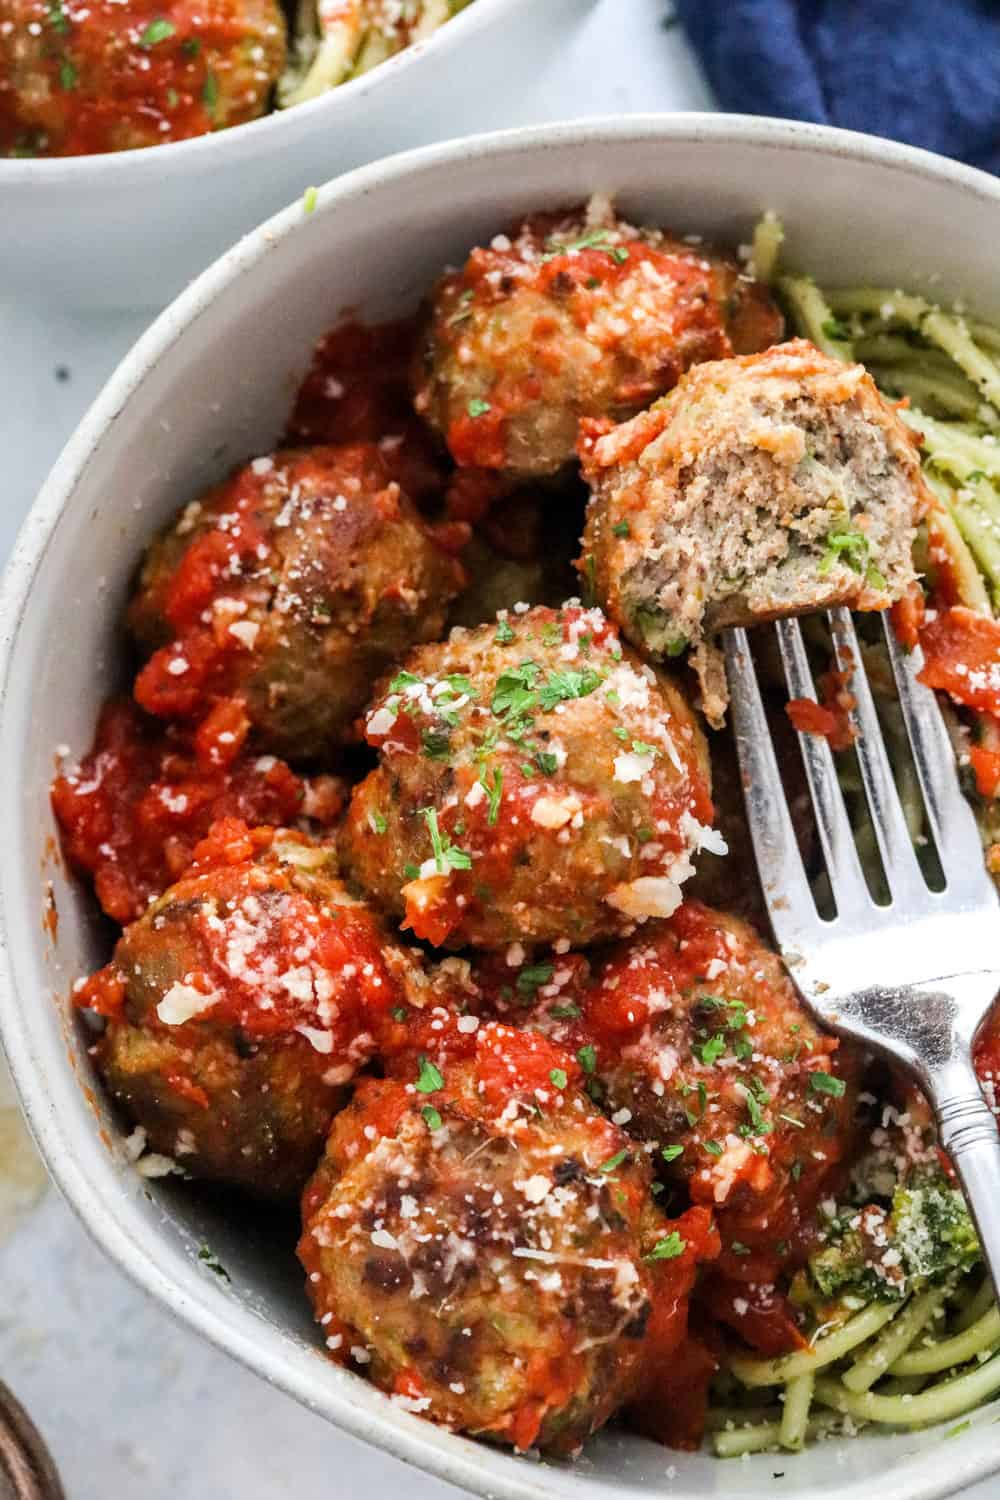 Round grey bowl filled with meatballs covered in red sauce with a meatball on a fork in the bowl over spaghetti